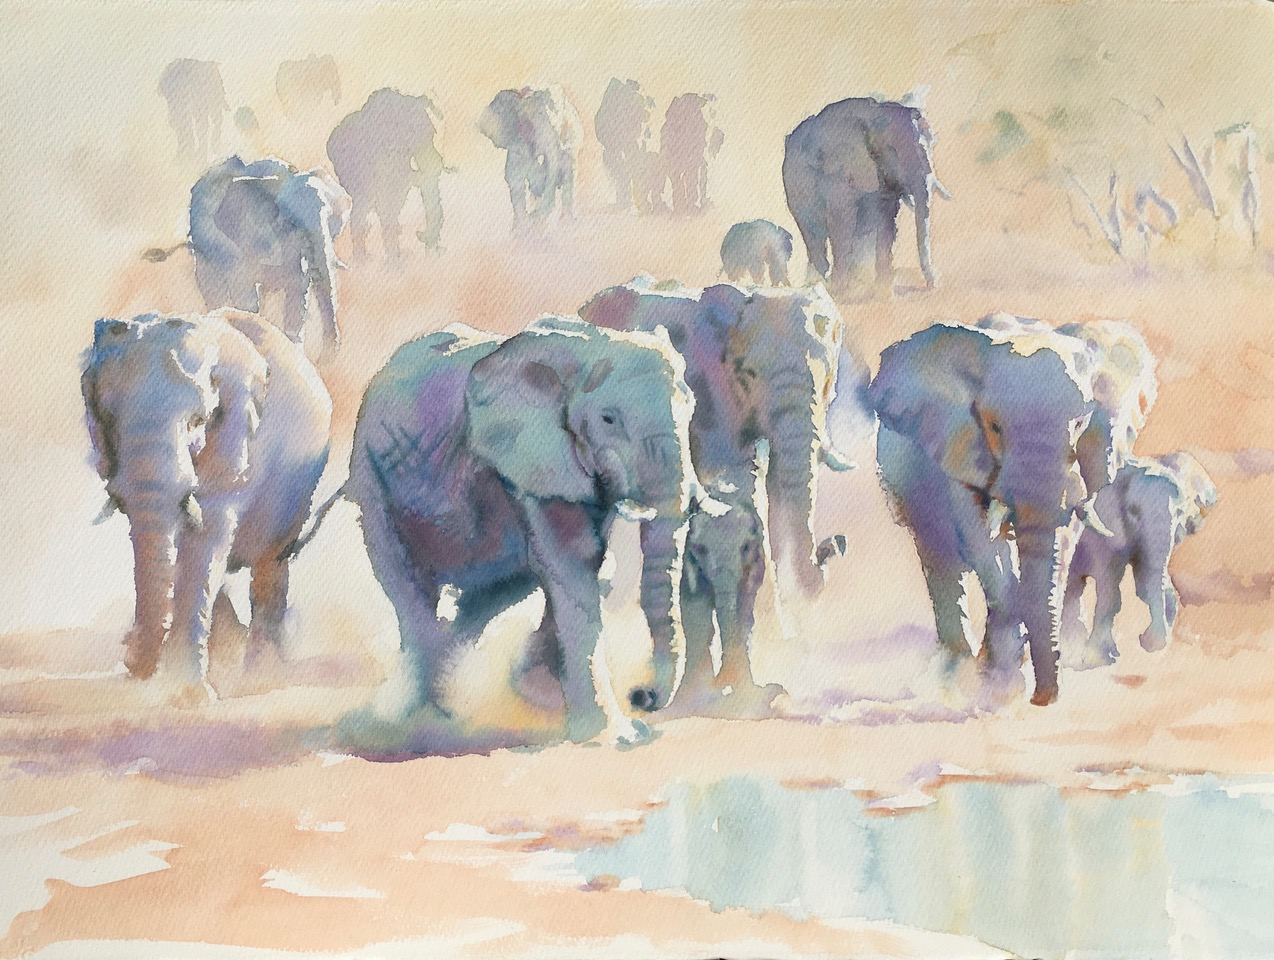 Veil of dust, Etosha 22 x 30 in 56 x 76 cm watercolour